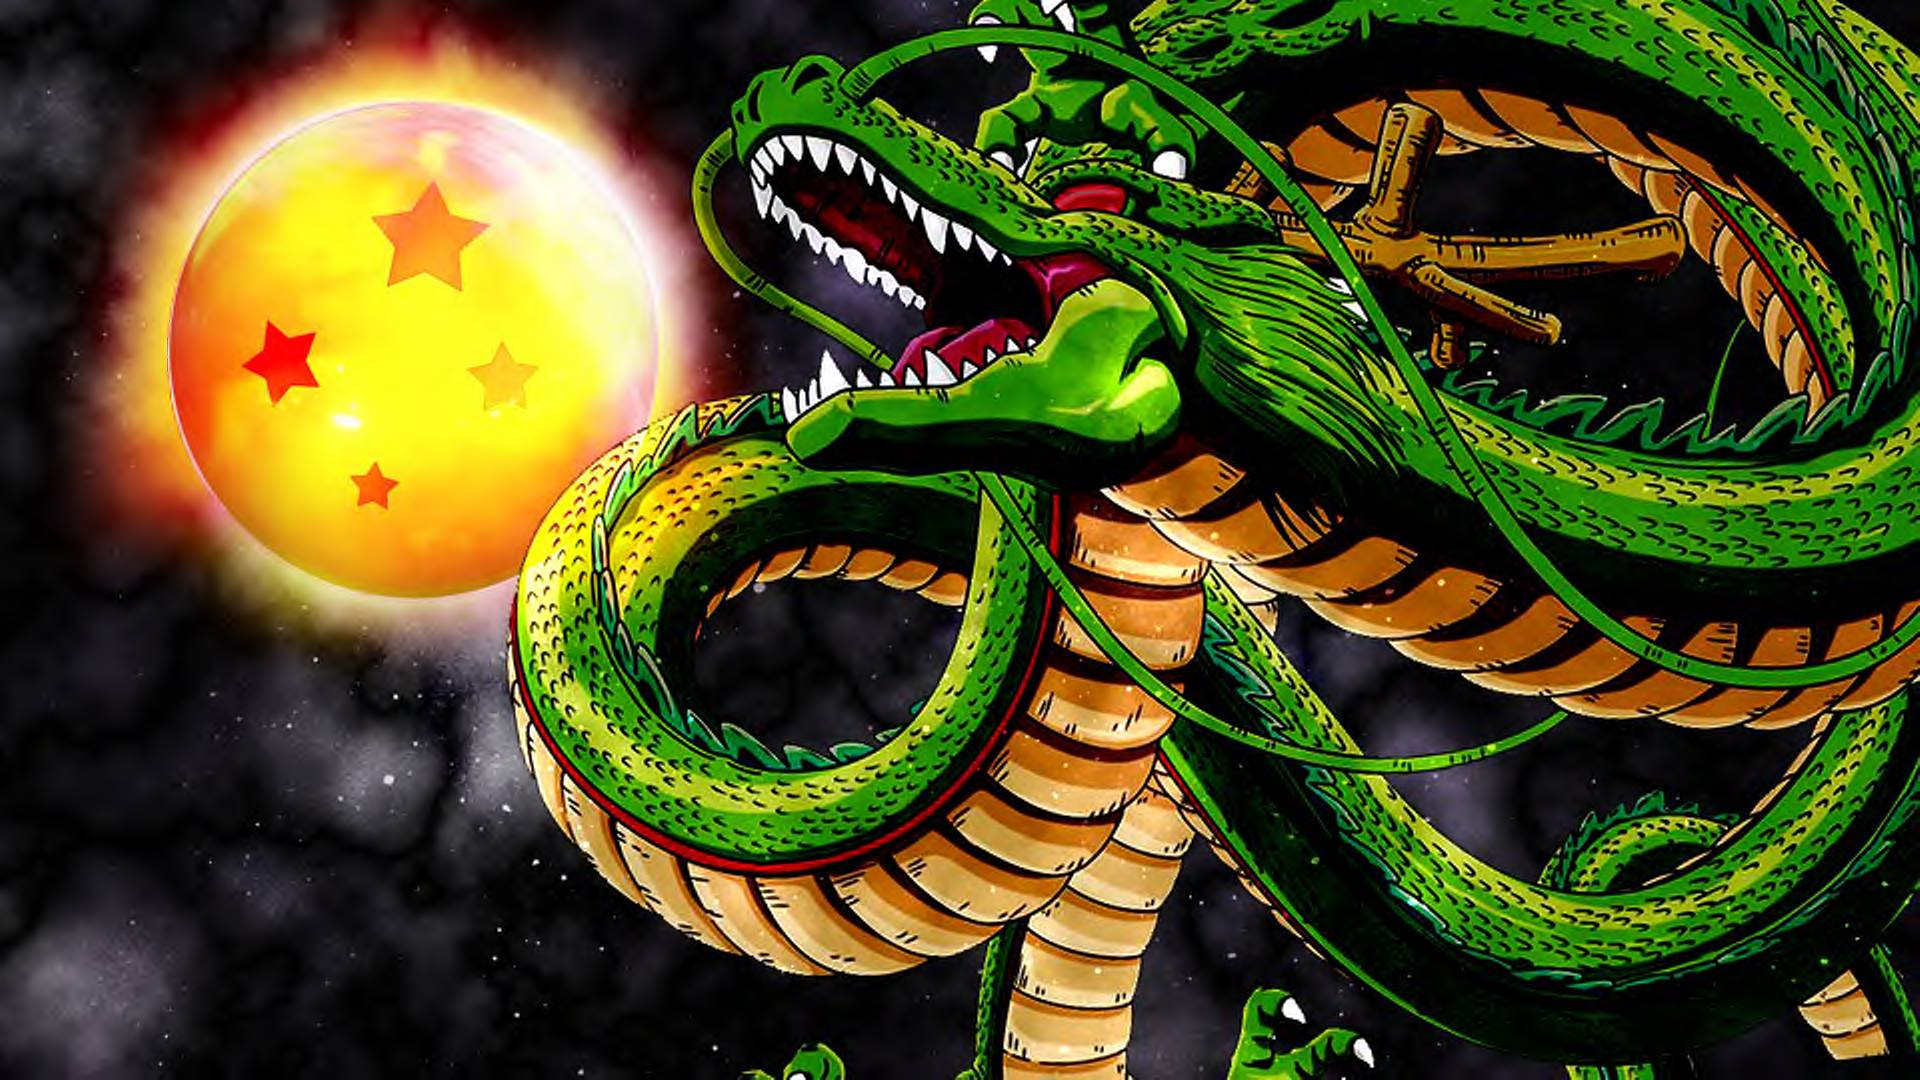 Dragon Ball Z Dragon Wallpaper 6076 Wallpaper Cool Walldiskpaper 1920x1080